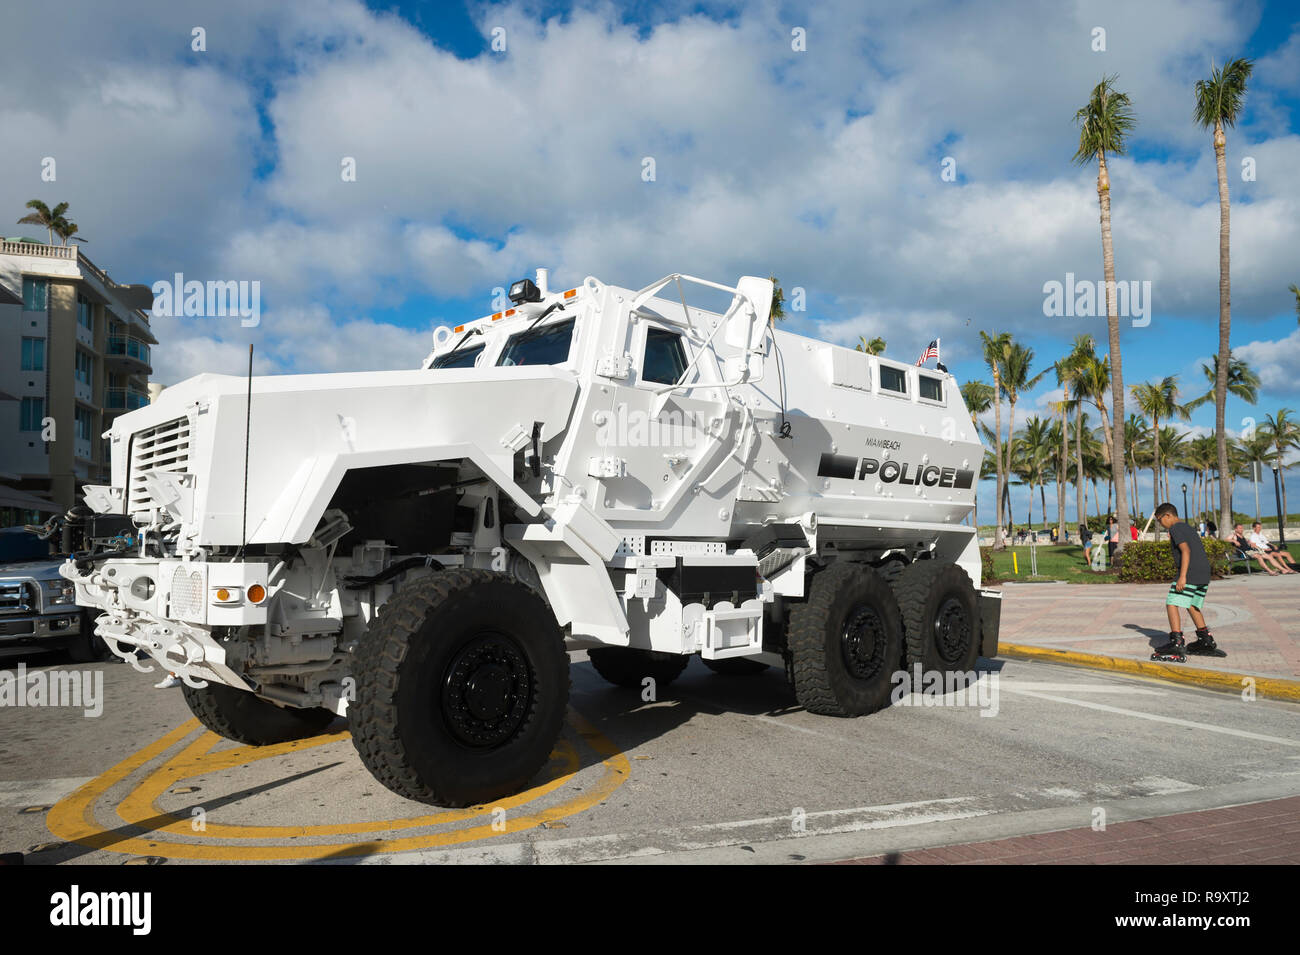 MIAMI - CIRCA DECEMBER, 2017: An armored police vehicle stands guard at Ocean Drive protecting crowds of pedestrians gathered for the holidays. - Stock Image